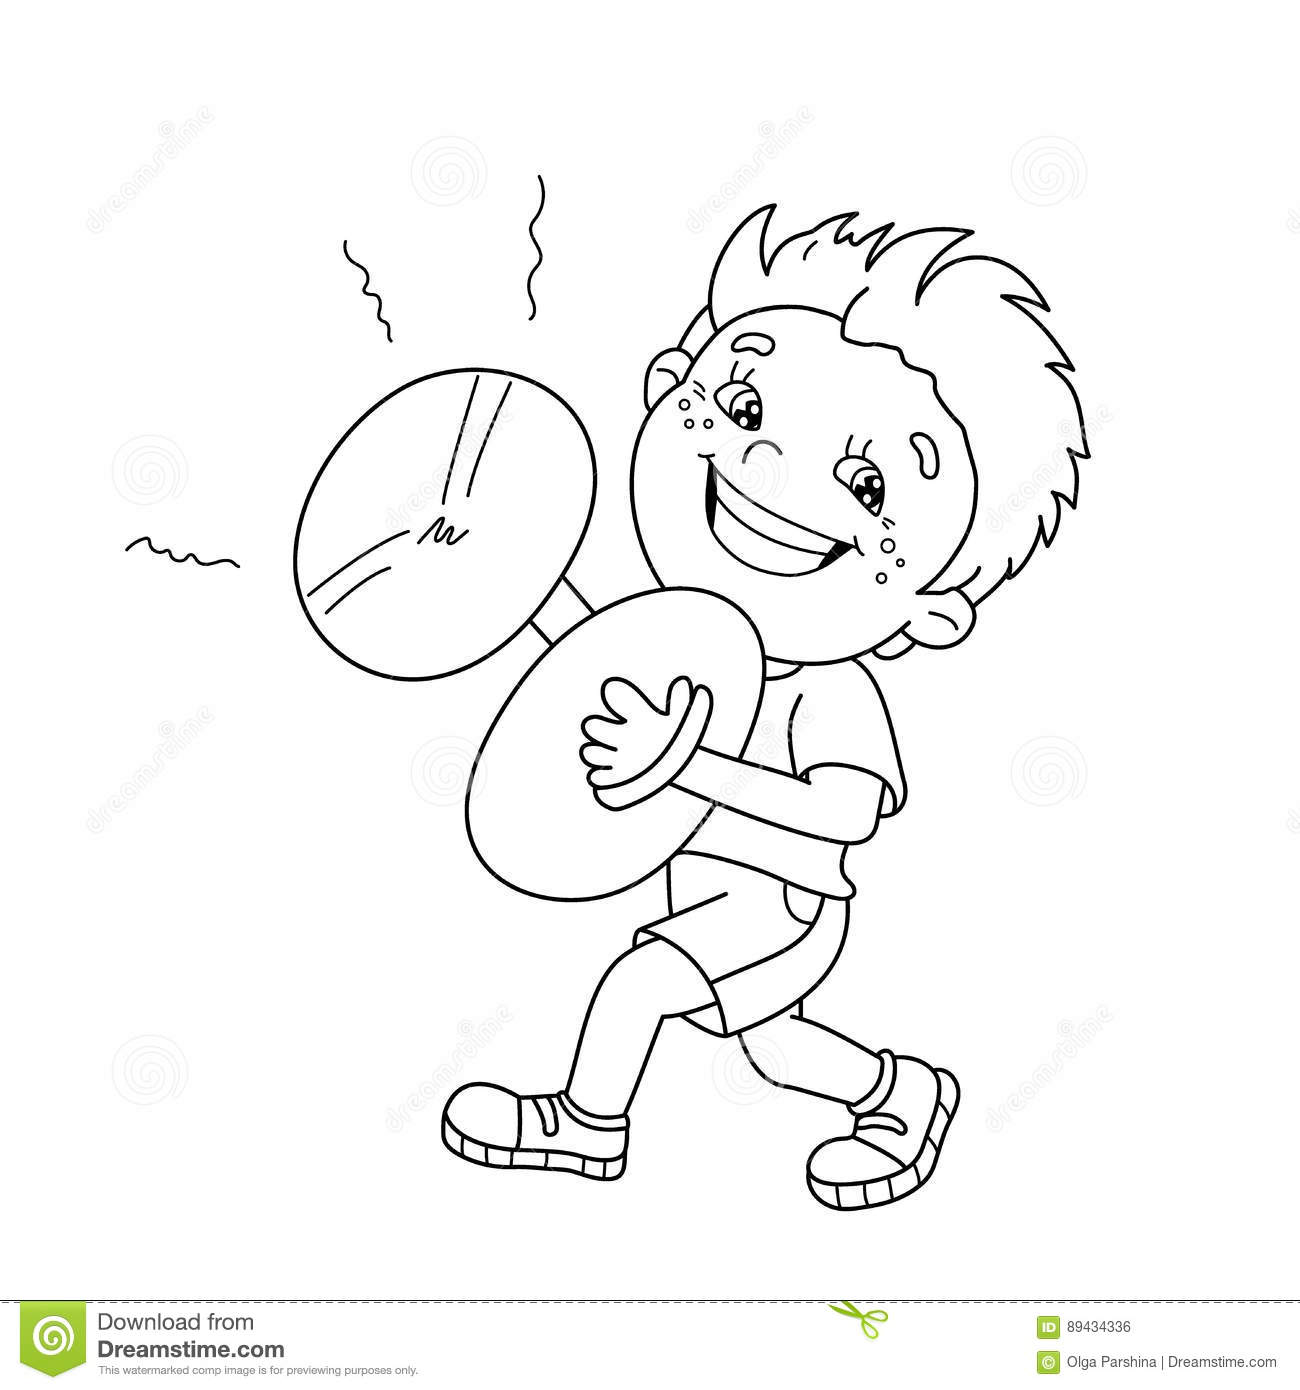 coloring page outline of cartoon boy playing the cymbals stock